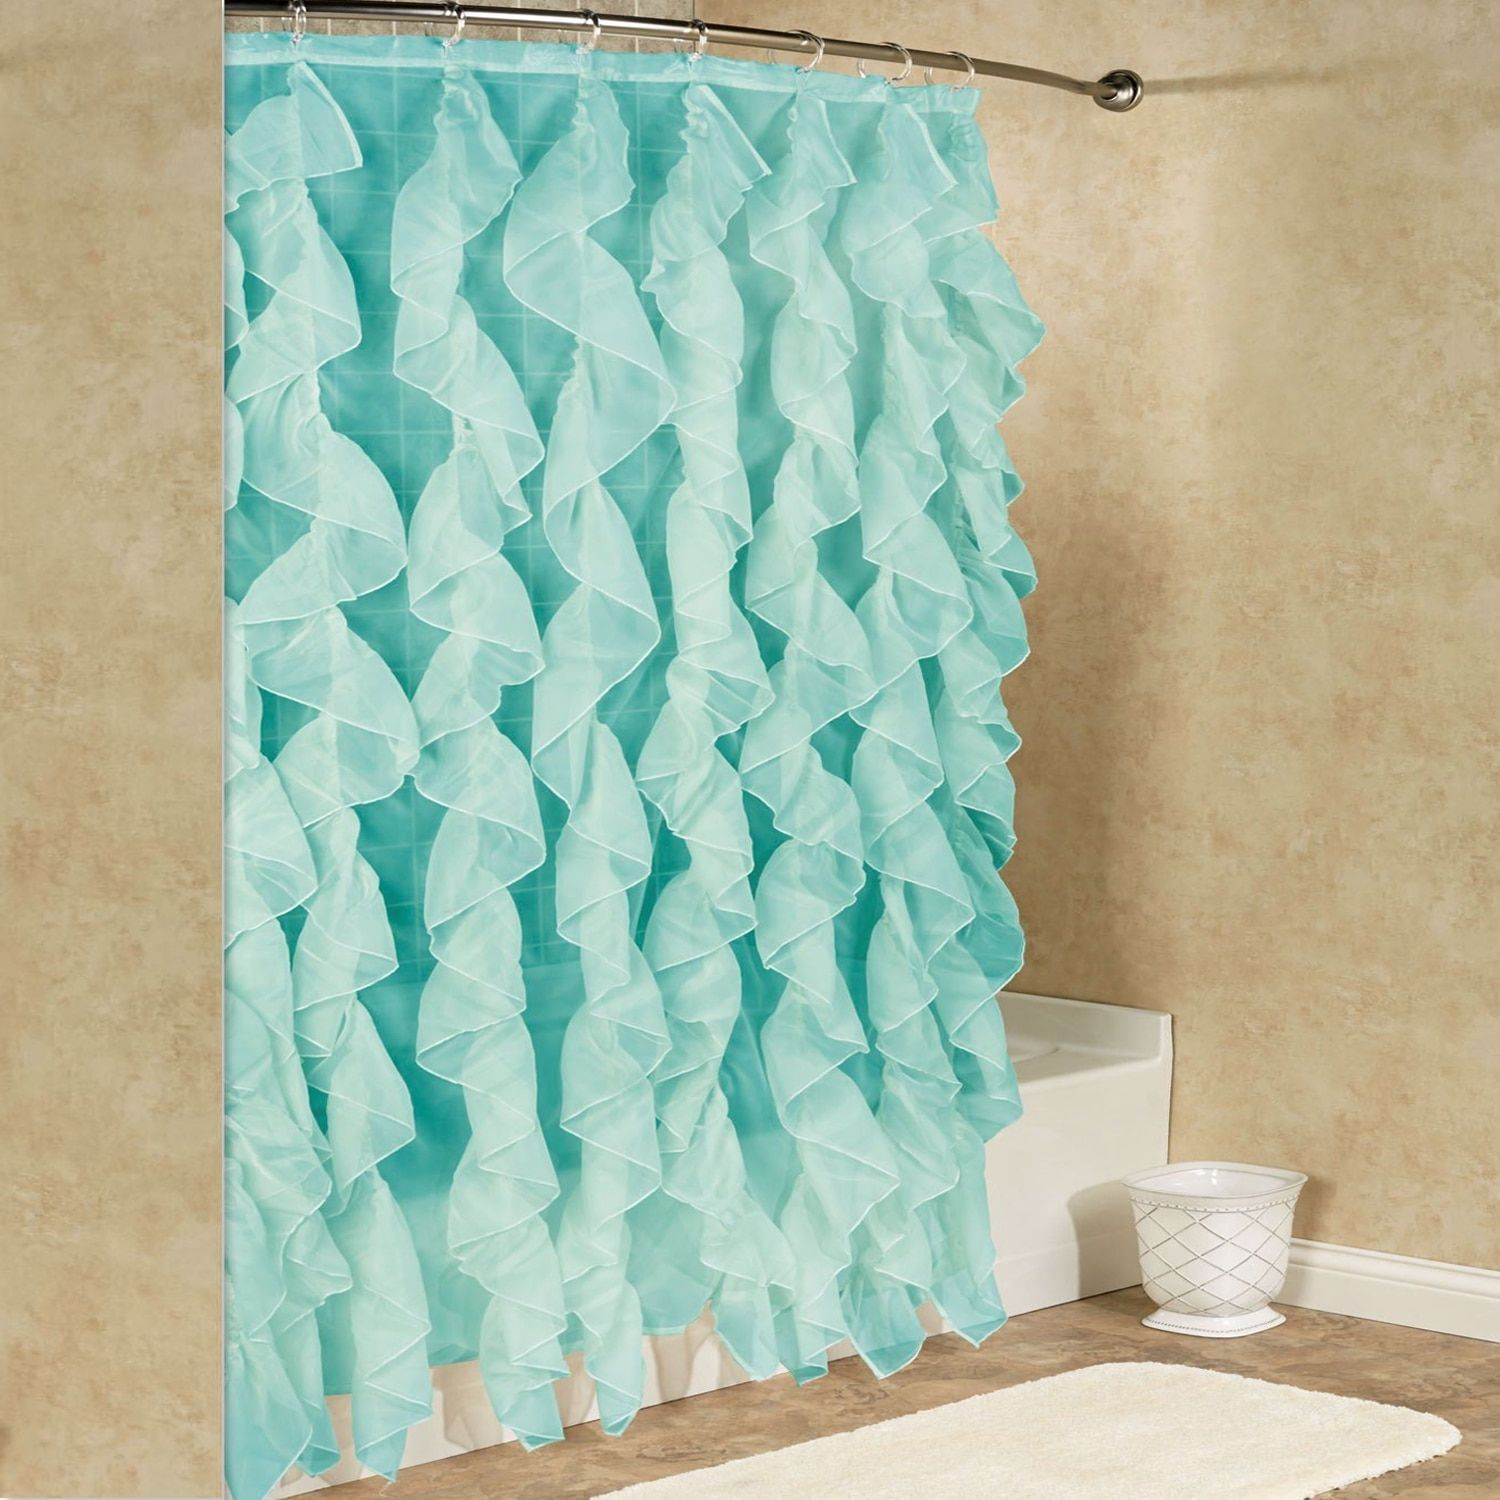 Chic sheer voile vertical waterfall blue ruffled shower curtain